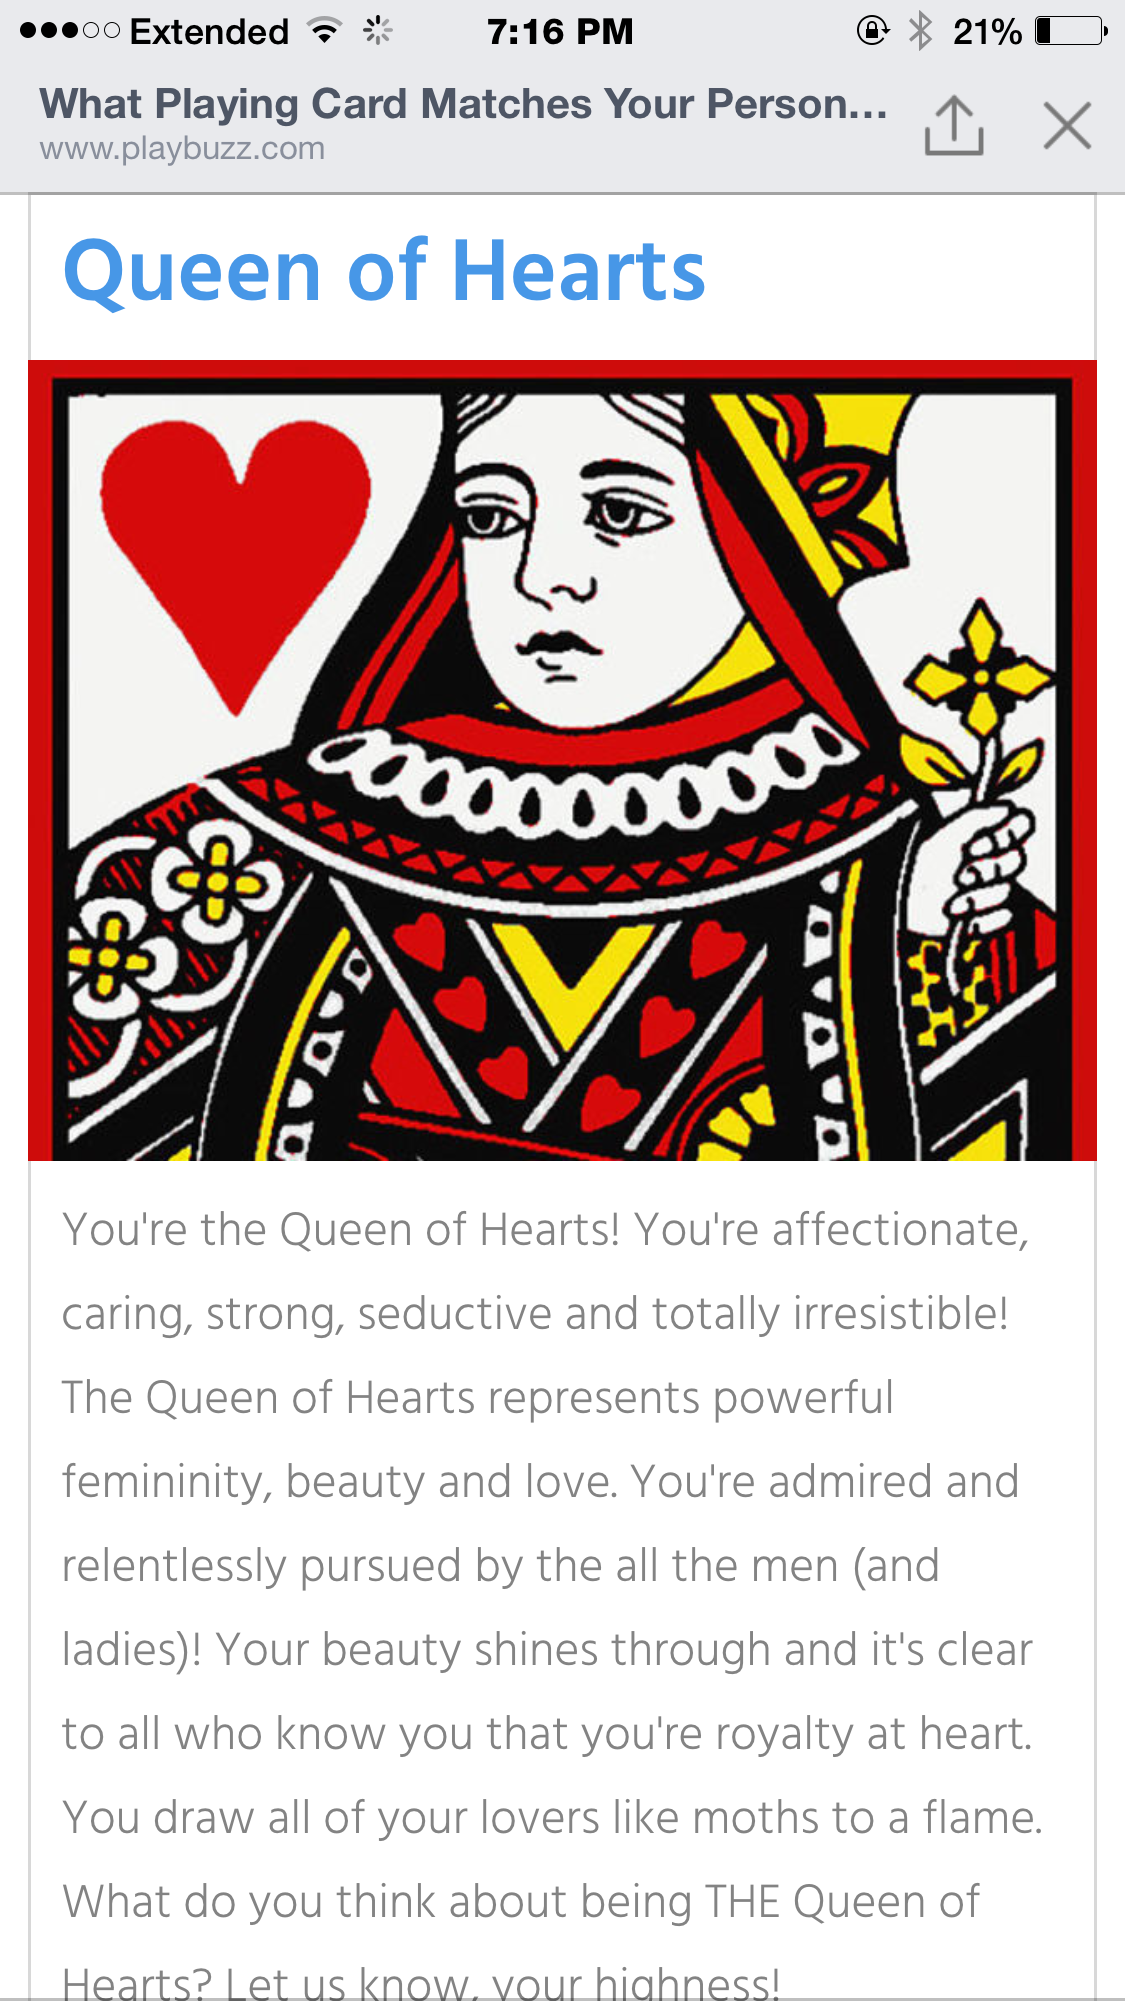 Pin by Terri Will on IDIDIT !! Queen of hearts